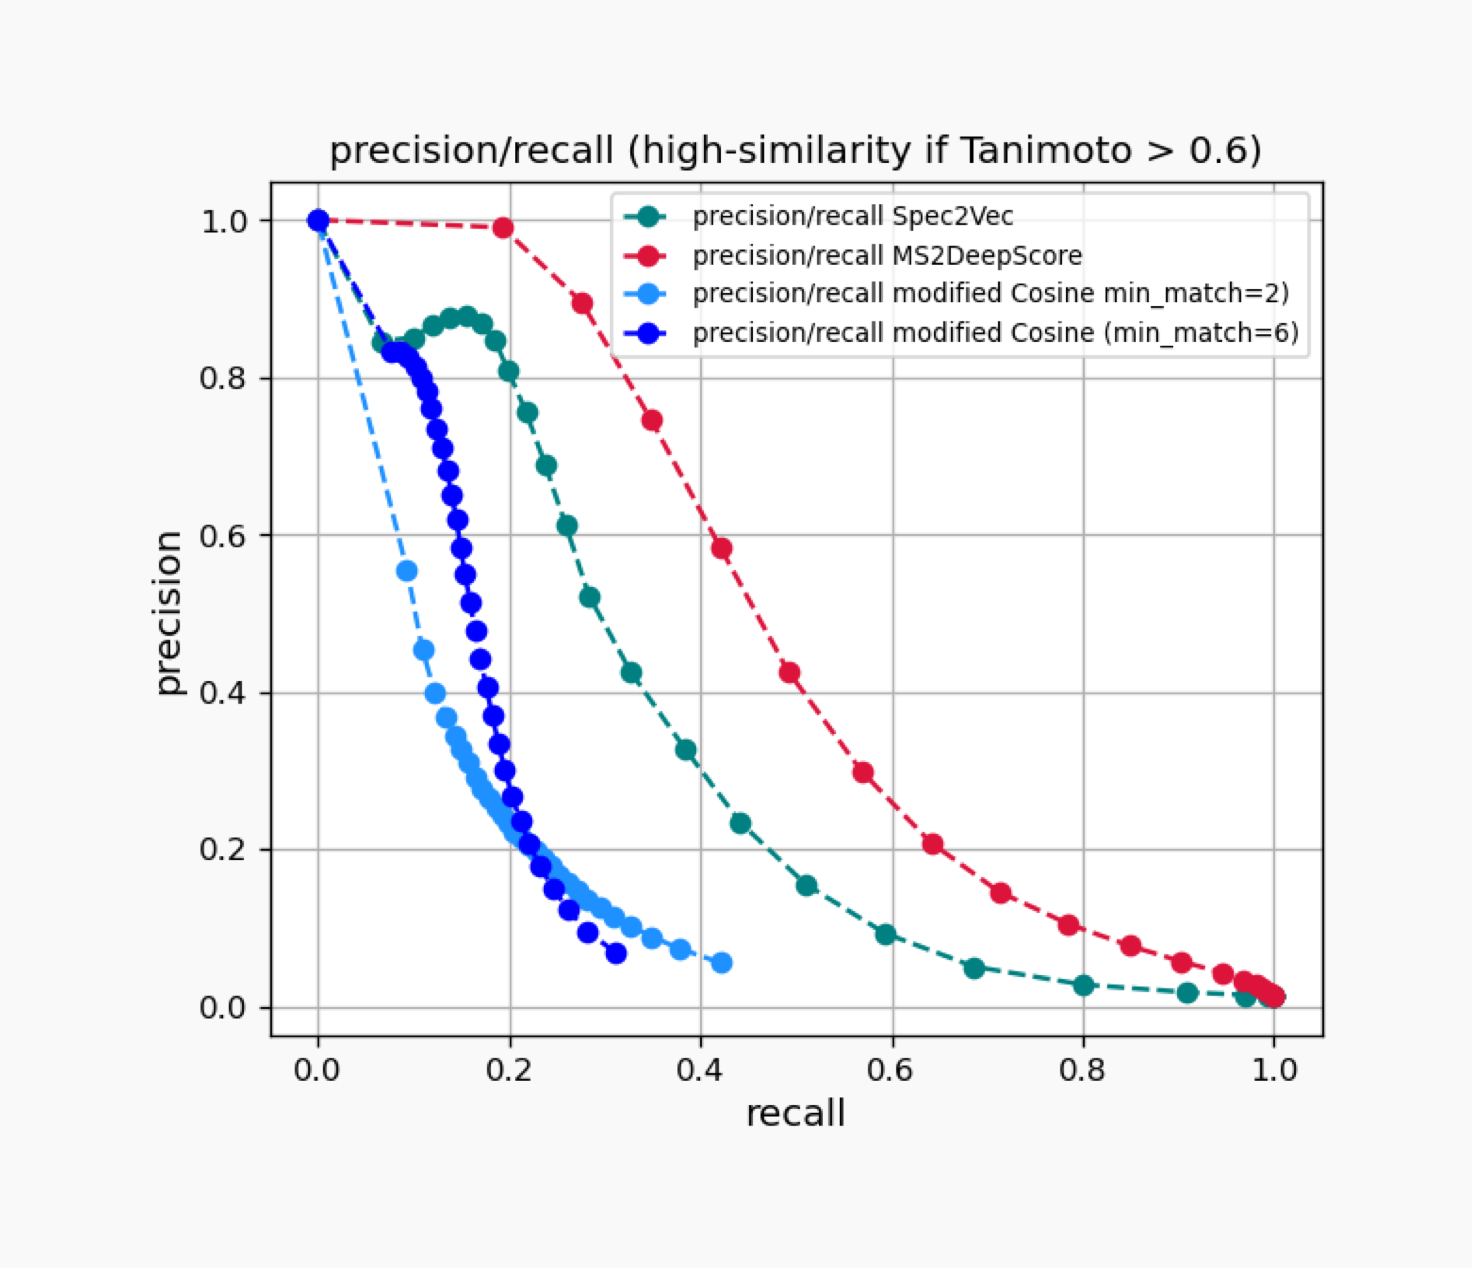 A plot of precision vs recall for four comparison algorithms comparing structurally similar compounds by their spectra.